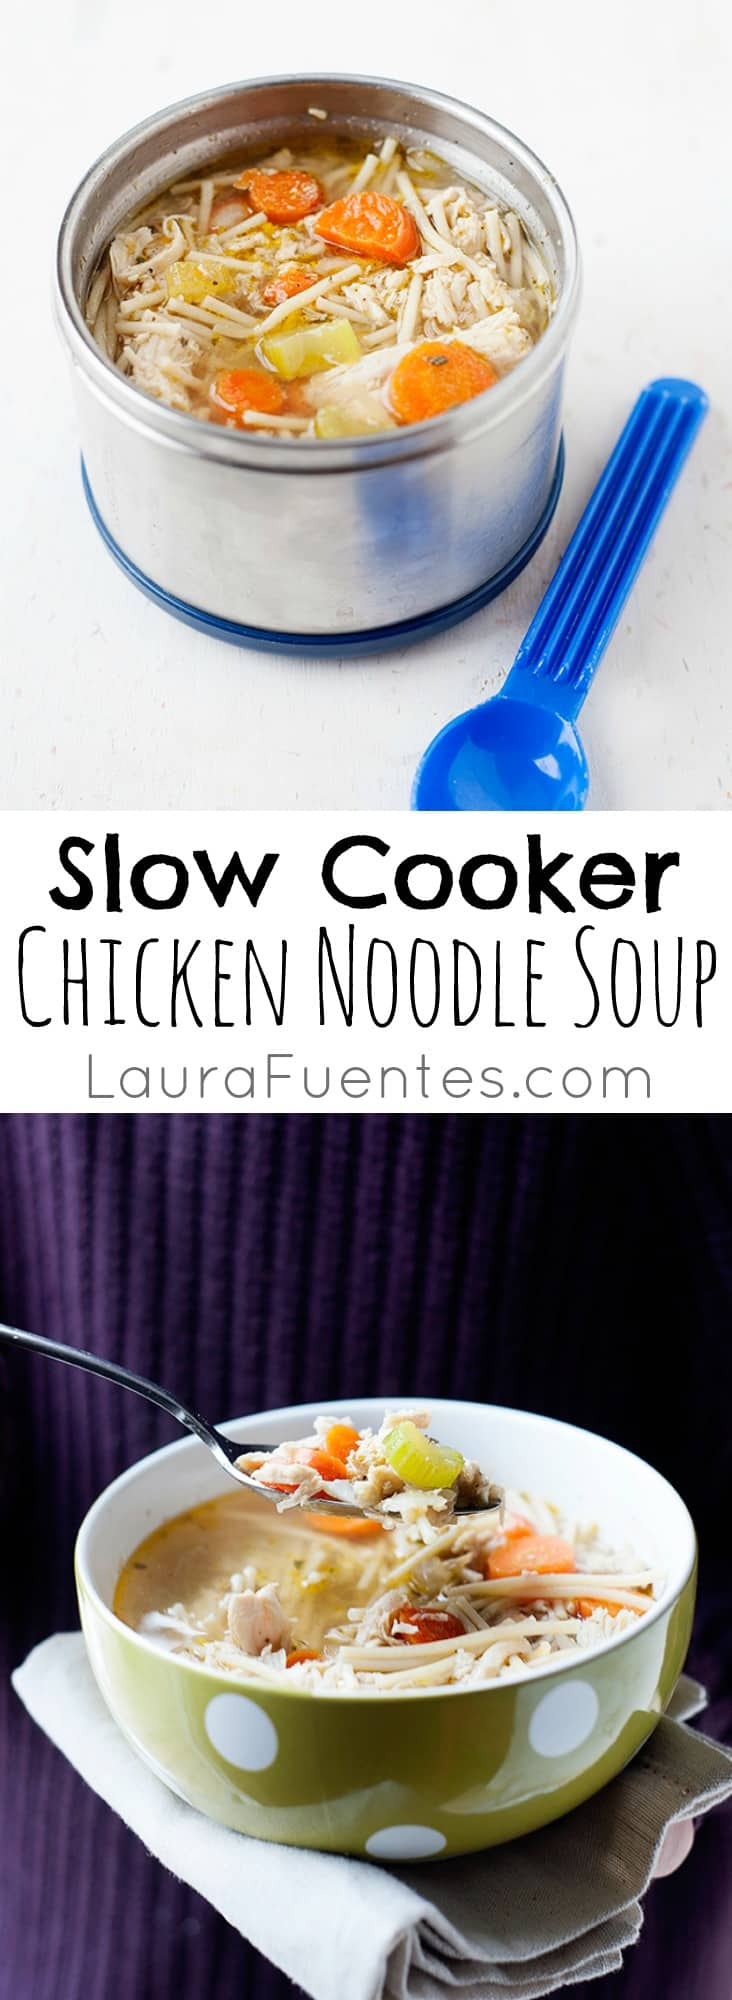 Warm up with this easy and delicious chicken noodle soup made in the Crockpot!